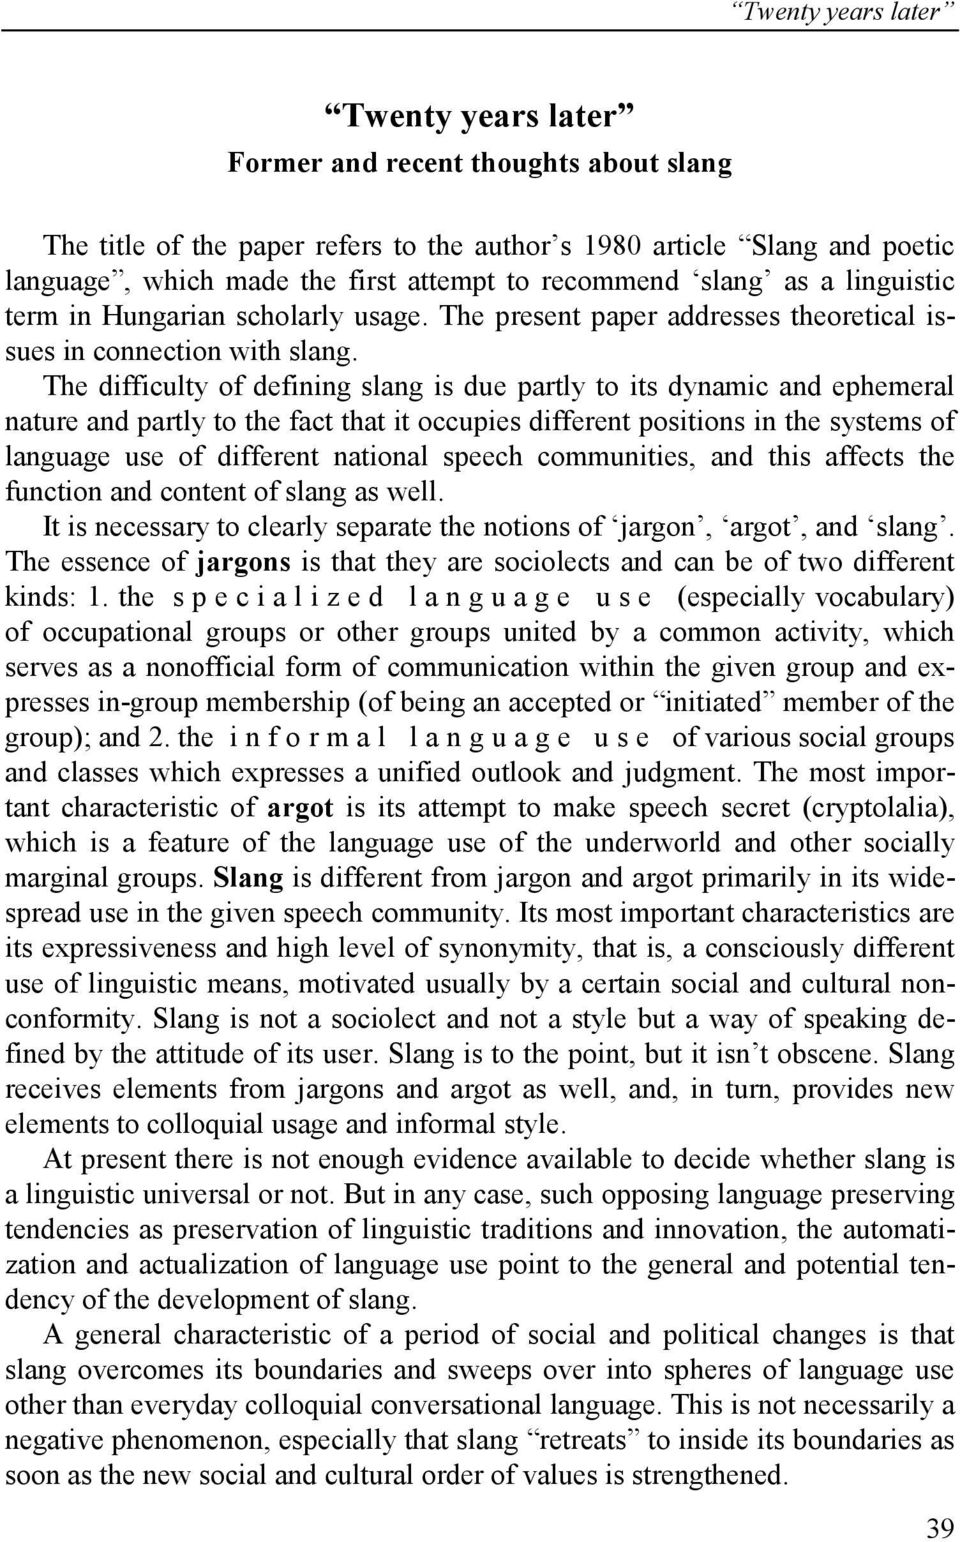 The difficulty of defining slang is due partly to its dynamic and ephemeral nature and partly to the fact that it occupies different positions in the systems of language use of different national